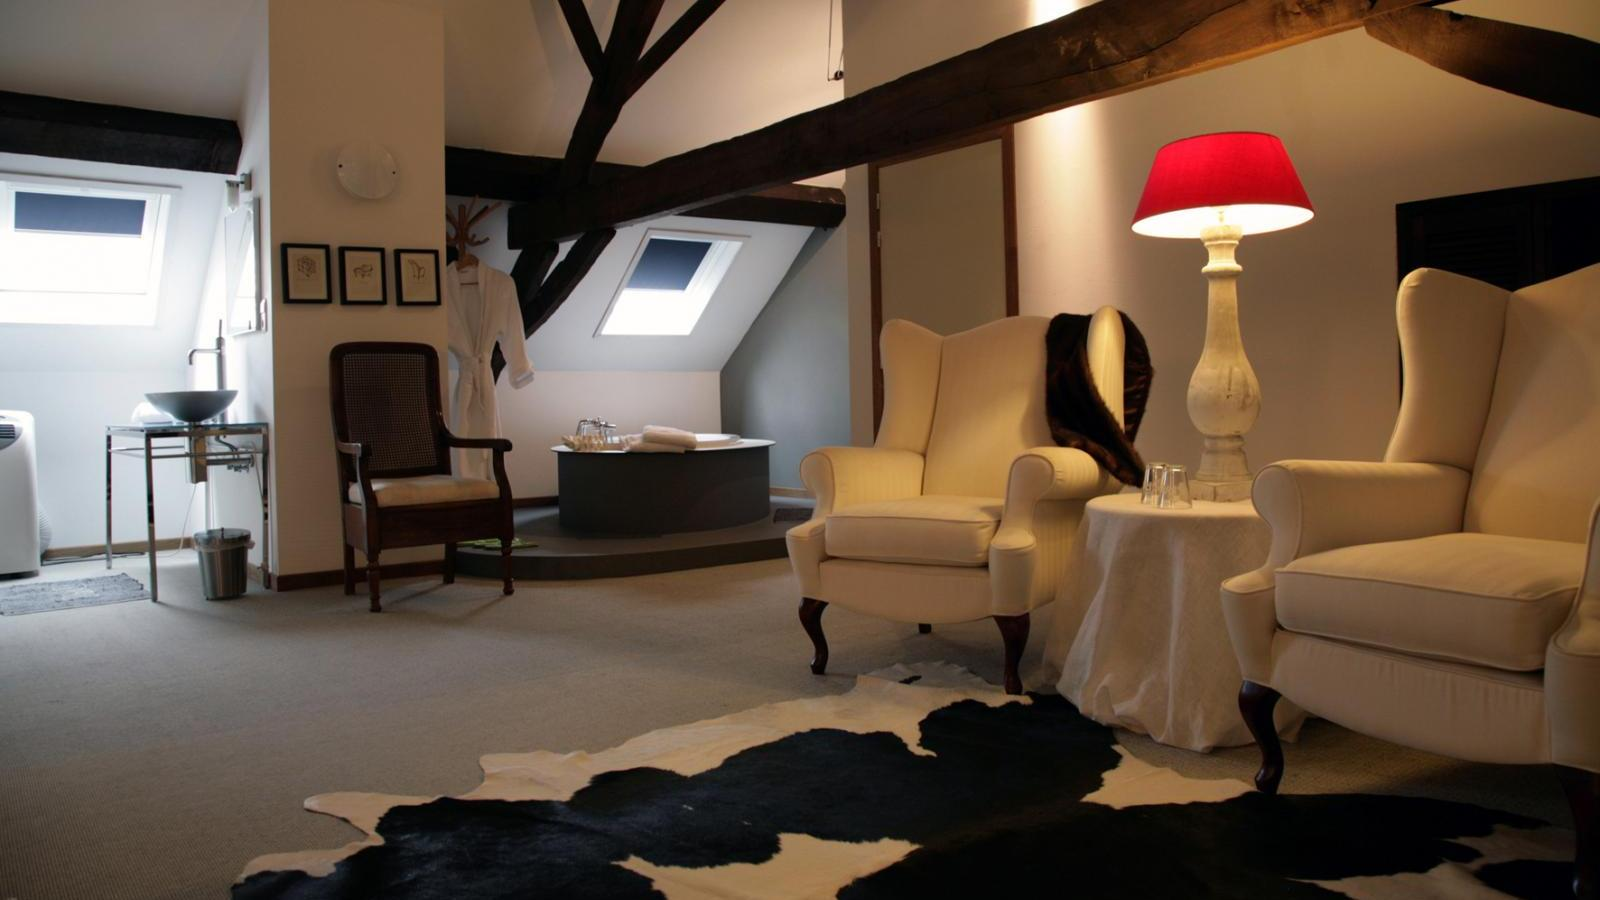 B&B Casa Ciolina: one of the most romantic B&B in Limburg